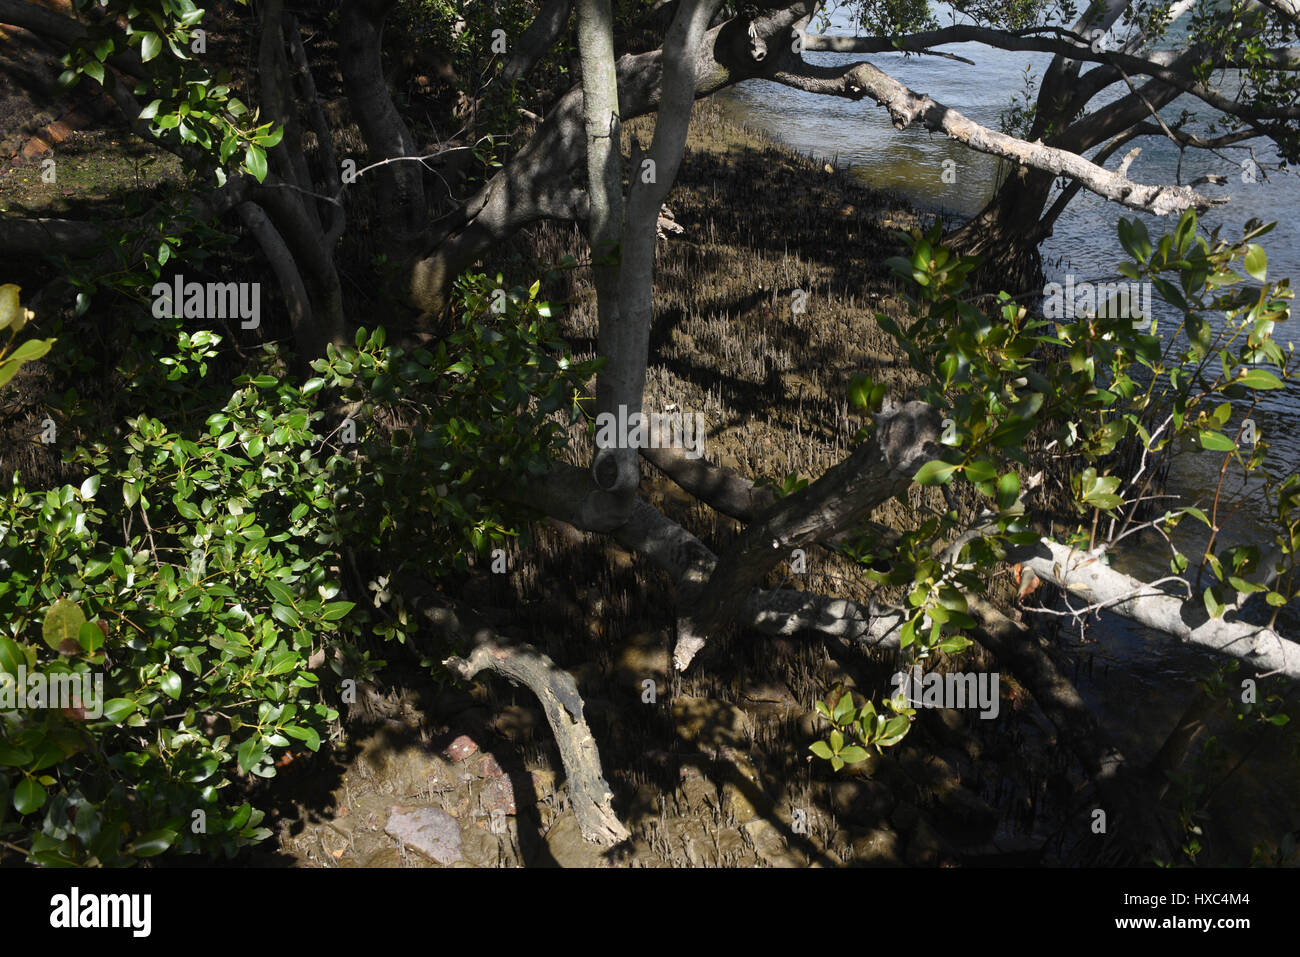 Brisbane, Australia: Mangroves on the banks of the Brisbane River - Stock Image